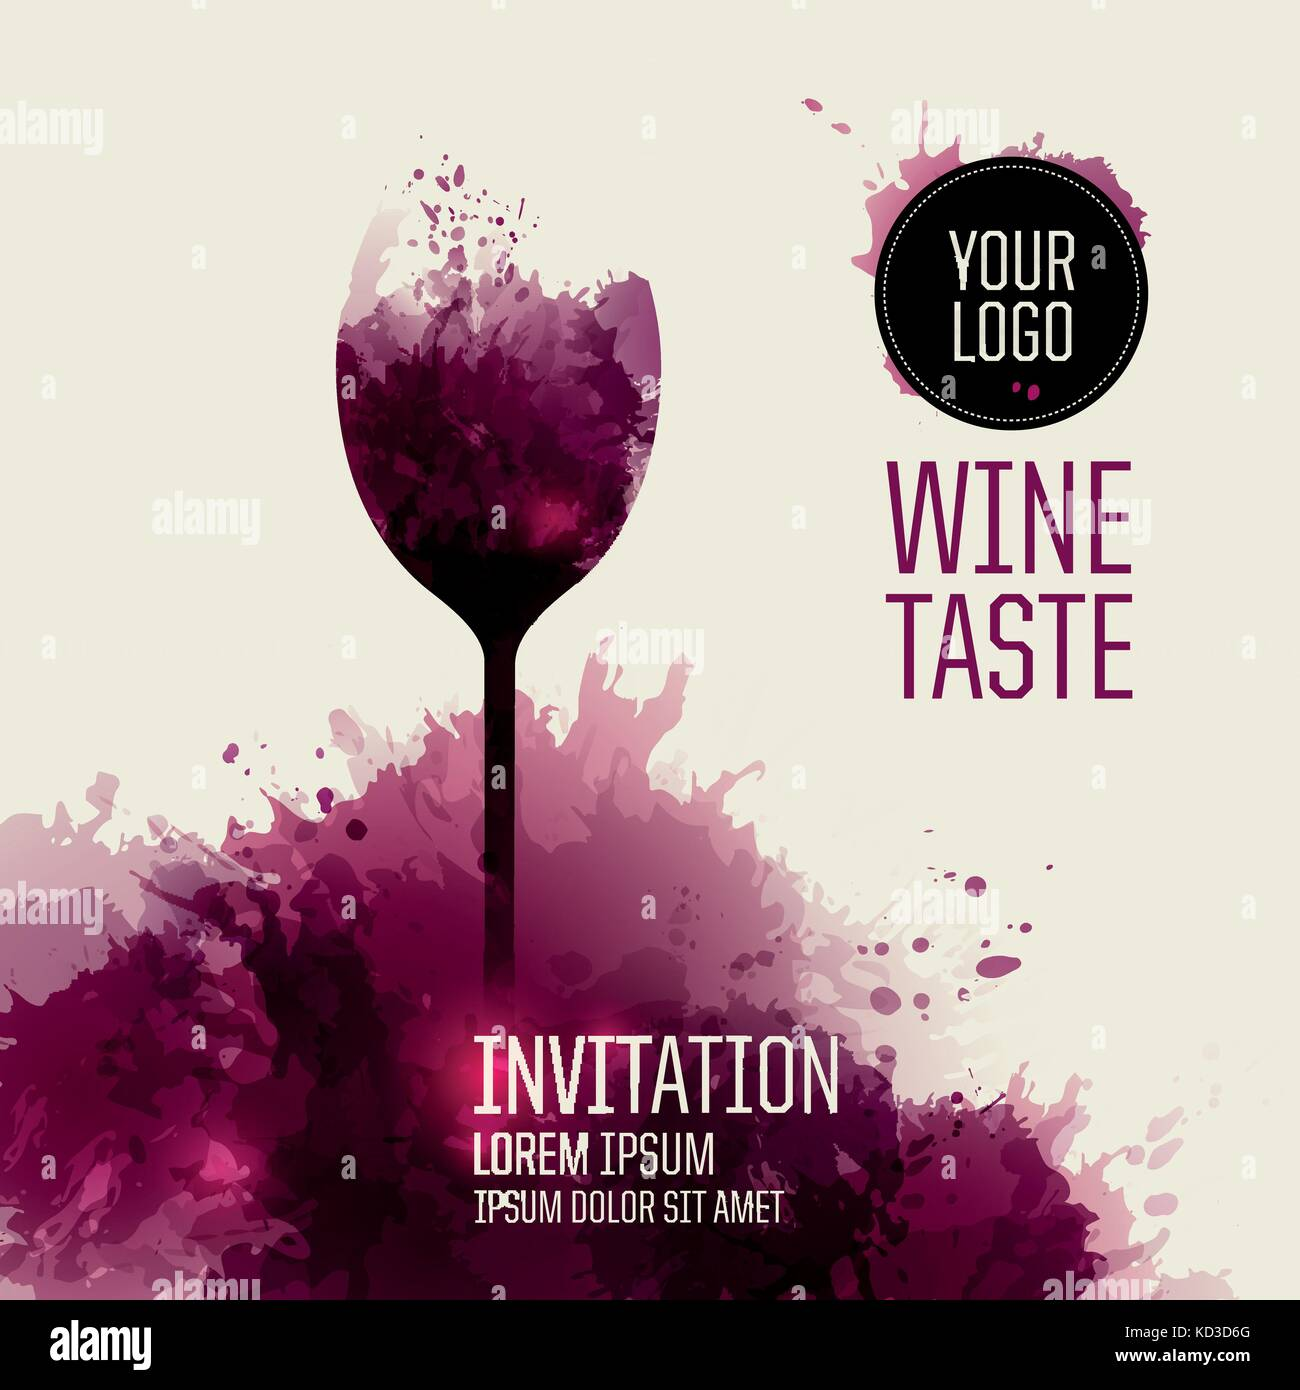 Invitation Template For Wine Event Or Party Stock Vector Art